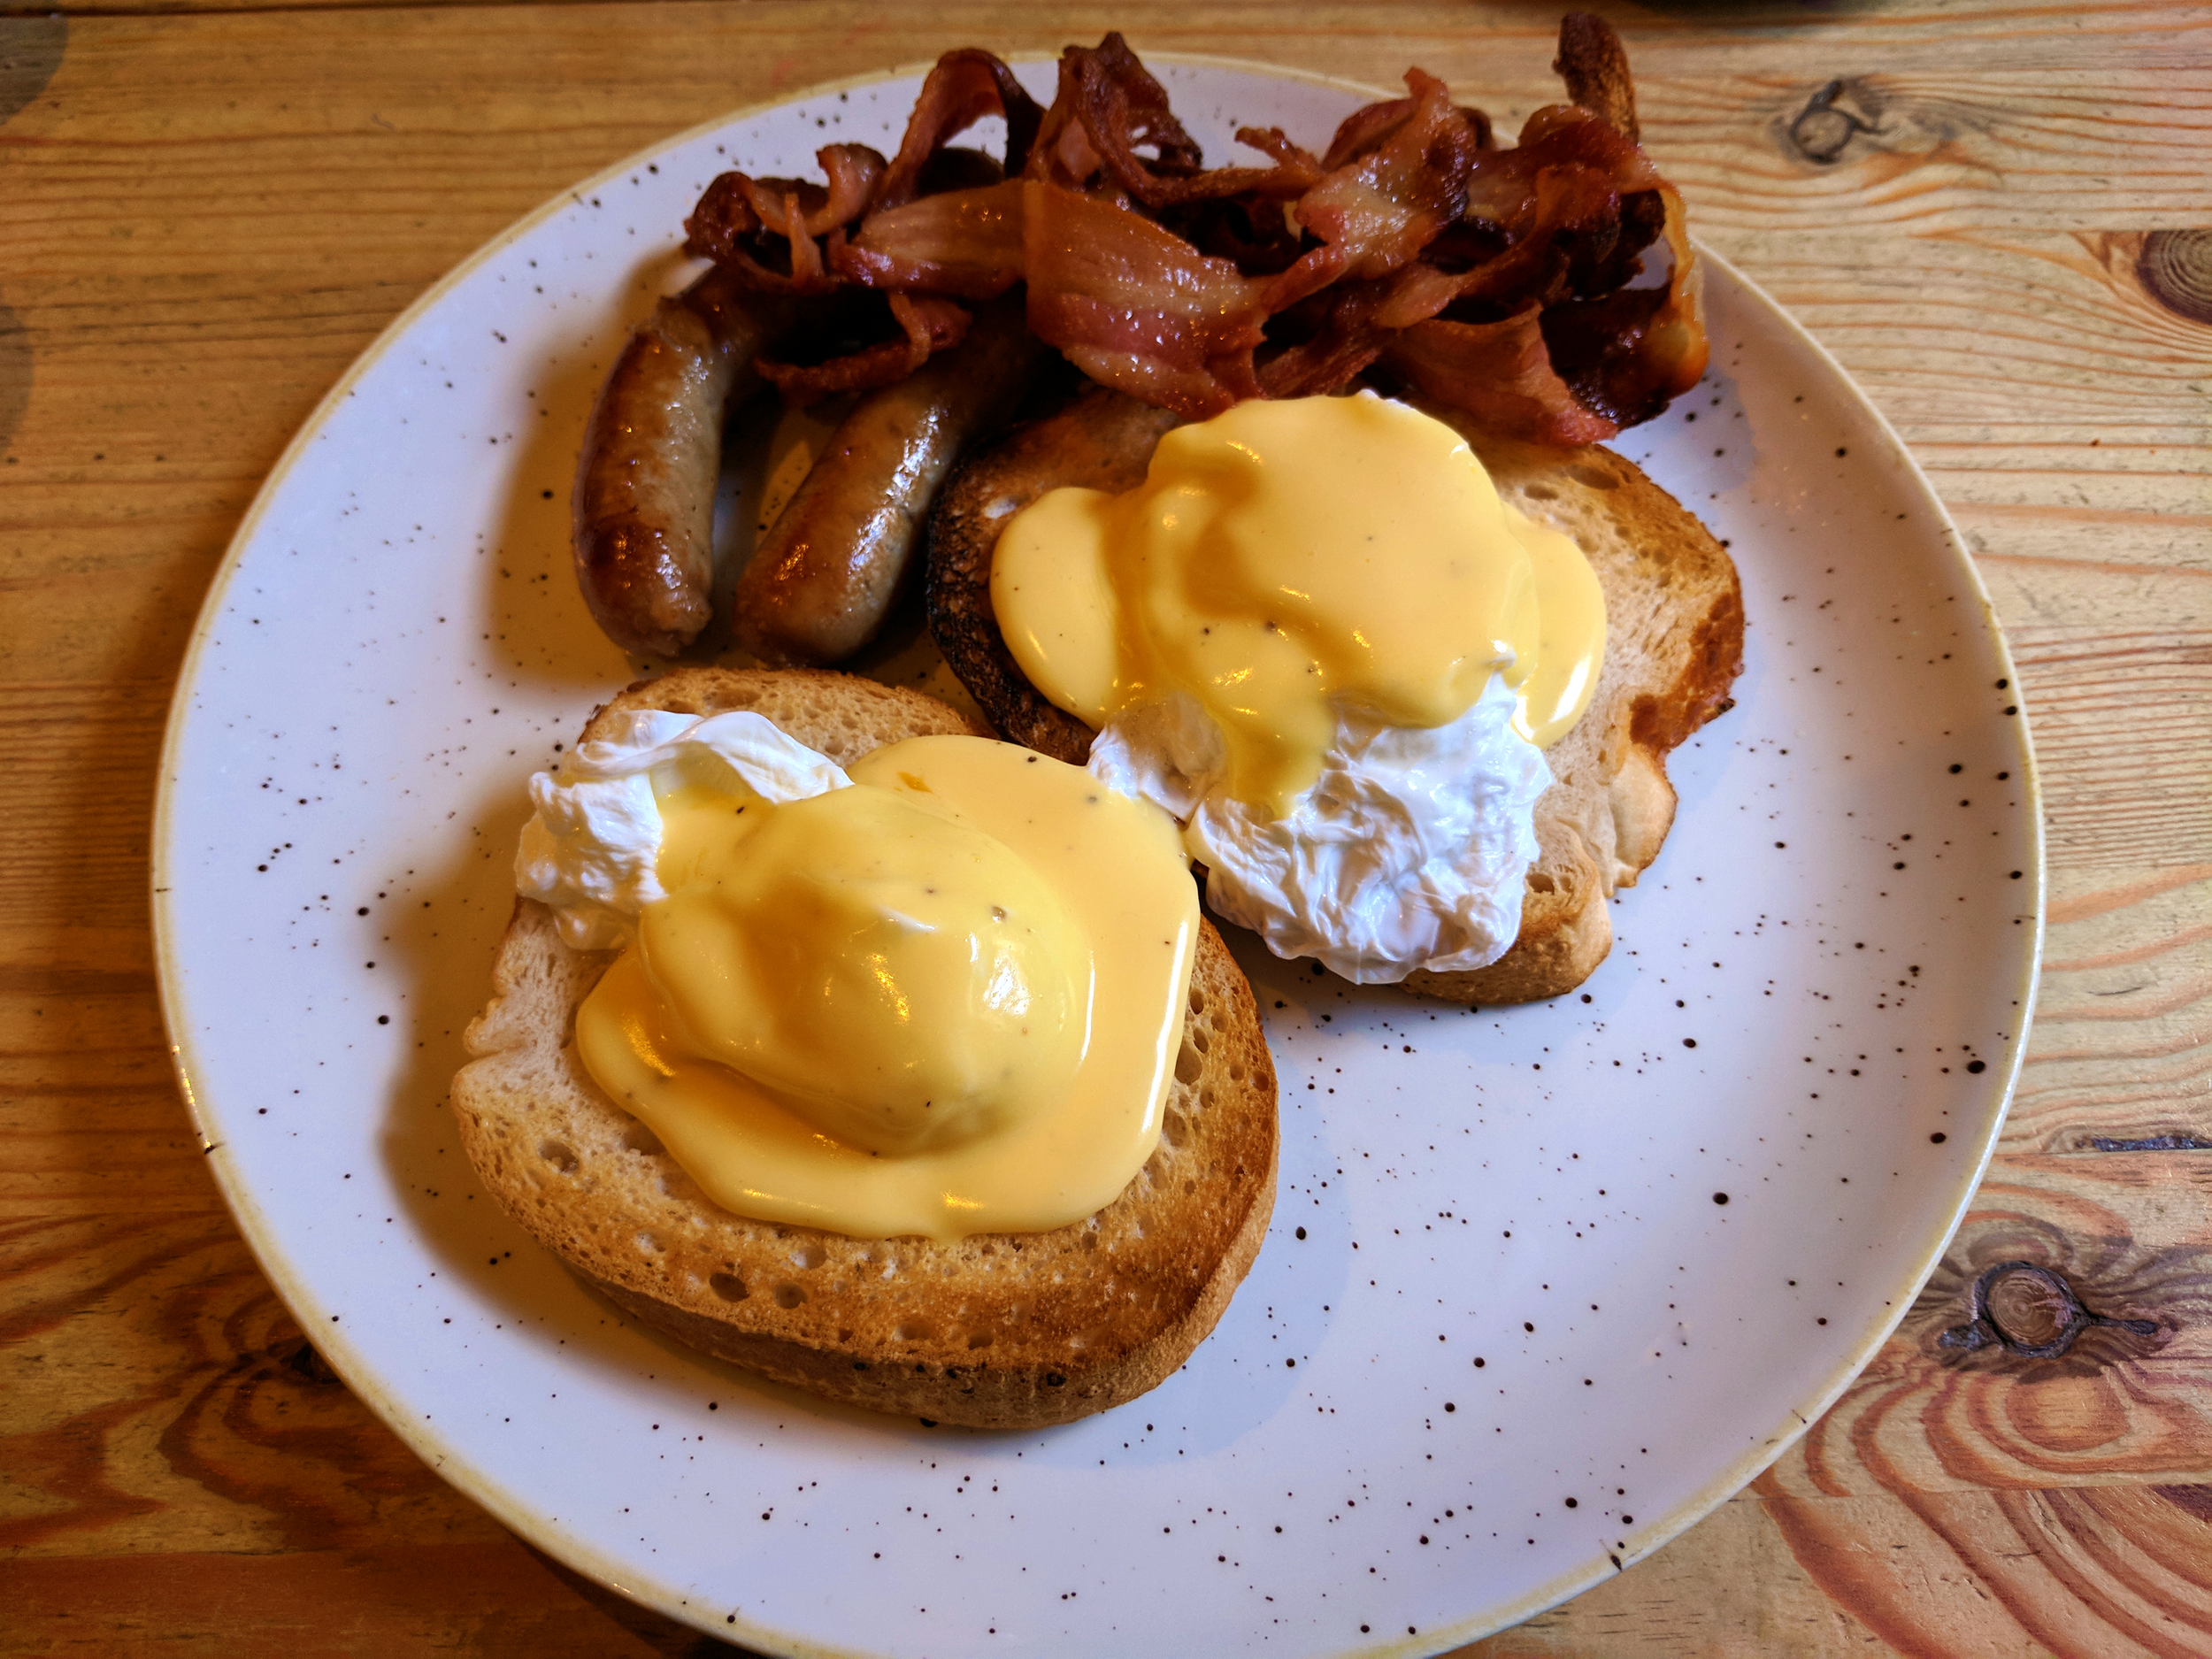 Eggs benedict on gluten-free bread from Urban Angel